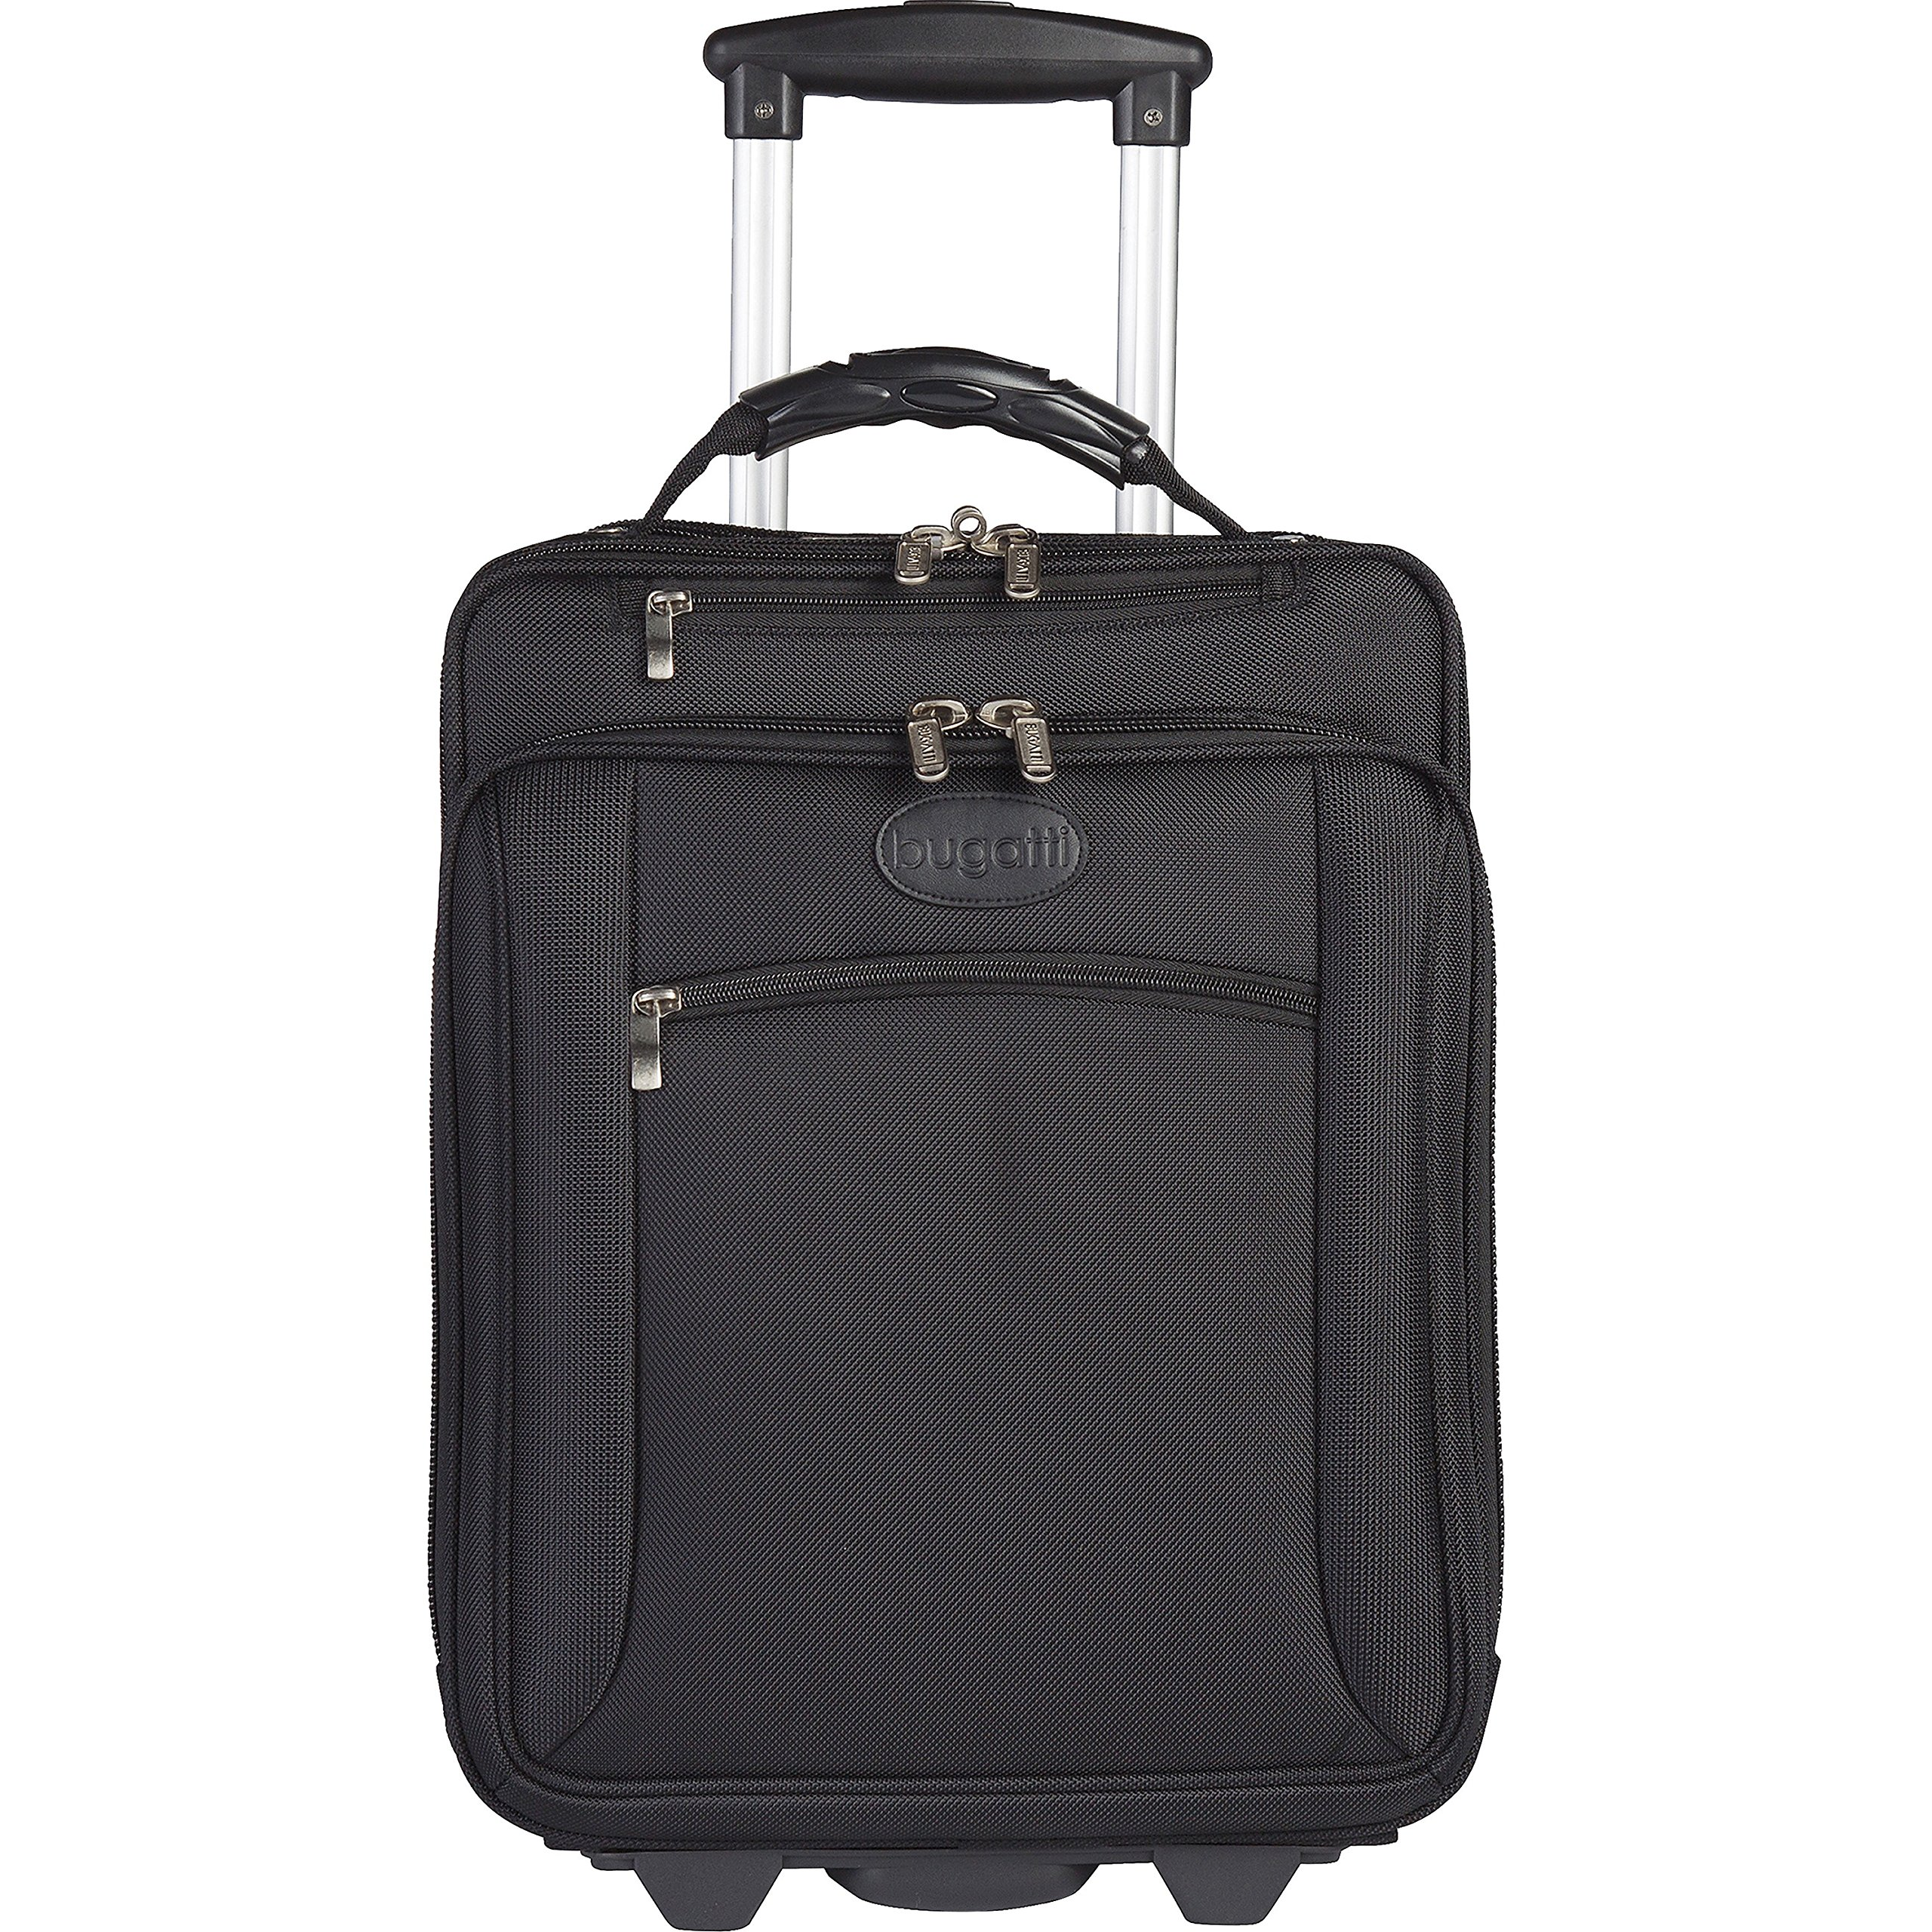 Bond Street BZCW772300 Business Case On Wheels 11''x14''x18'' Black